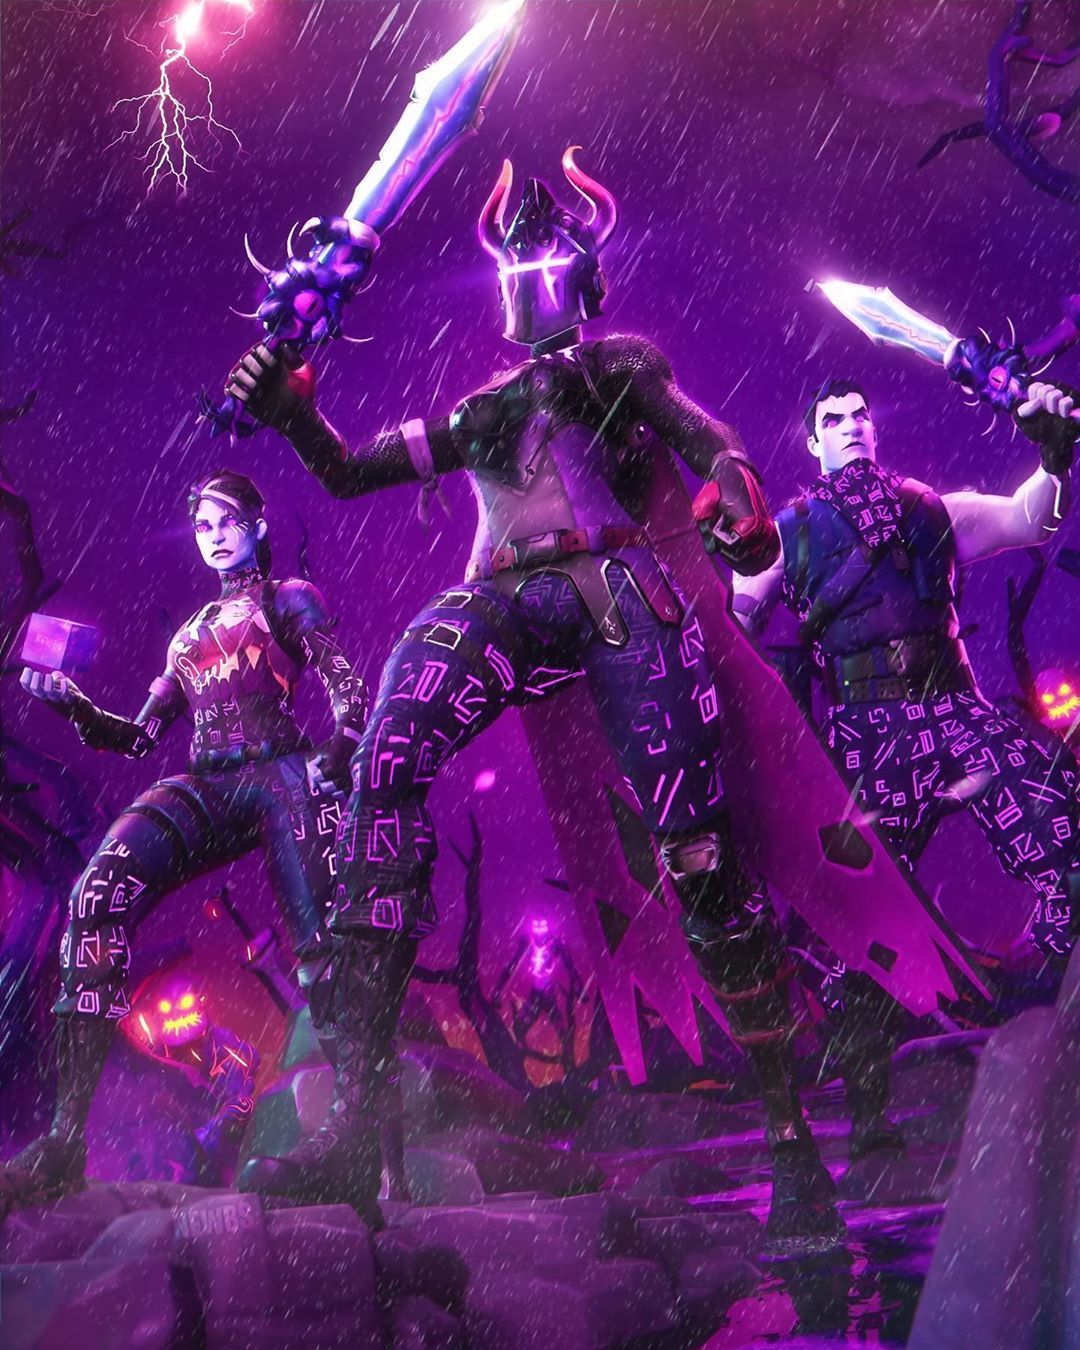 4 545 Likes 23 Comments Fortnite Thumbnails Envyreposts On Instagram Dark Reflections Gaming Wallpapers Best Gaming Wallpapers Game Wallpaper Iphone